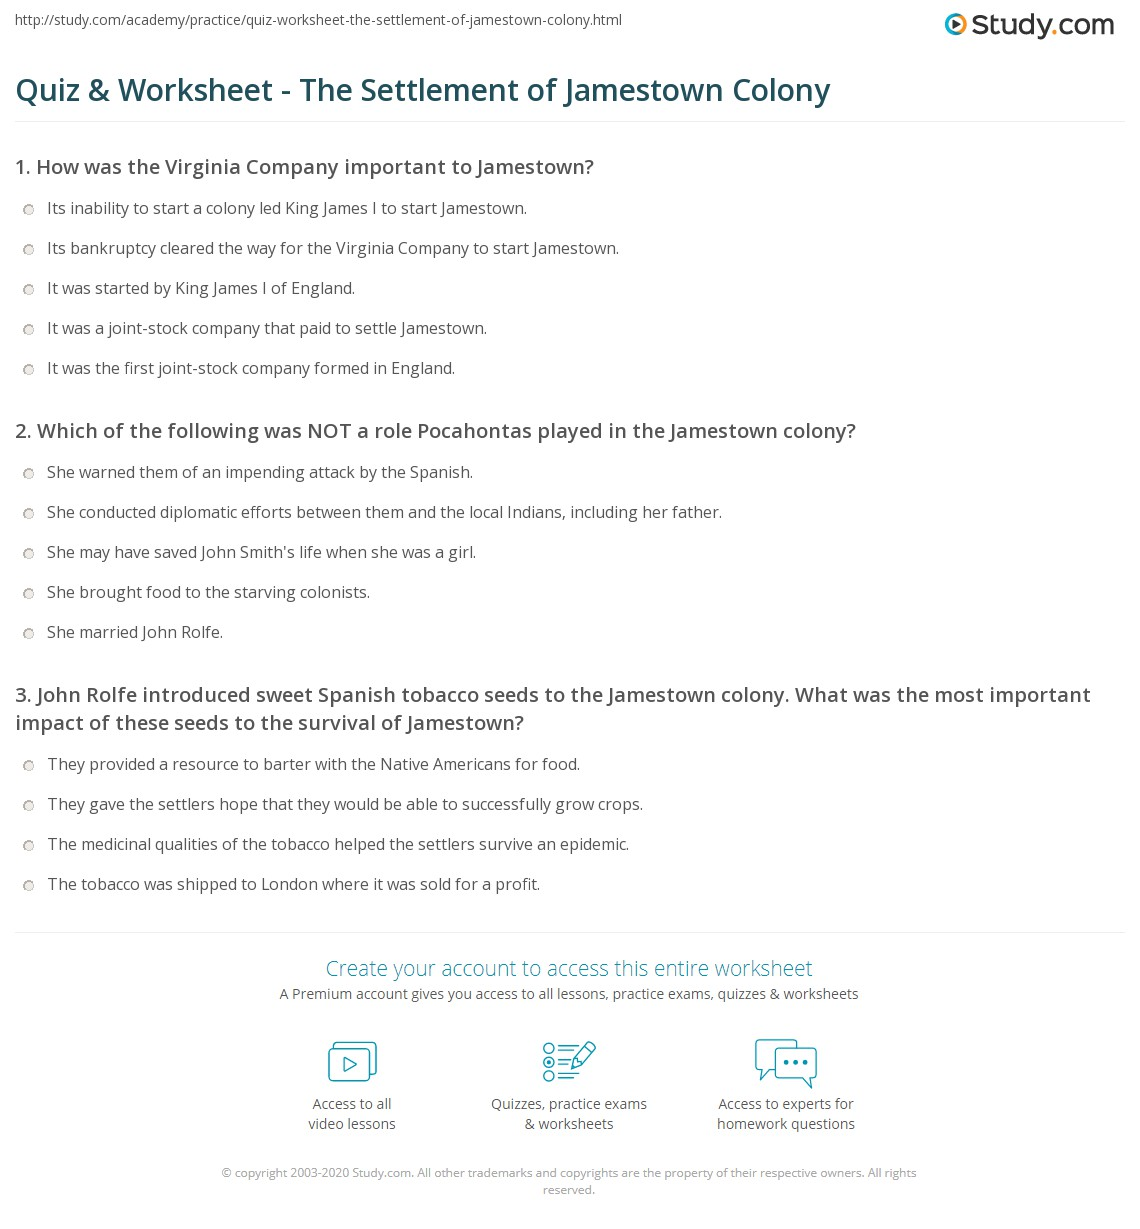 Quiz & Worksheet - The Settlement of Jamestown Colony | Study.com